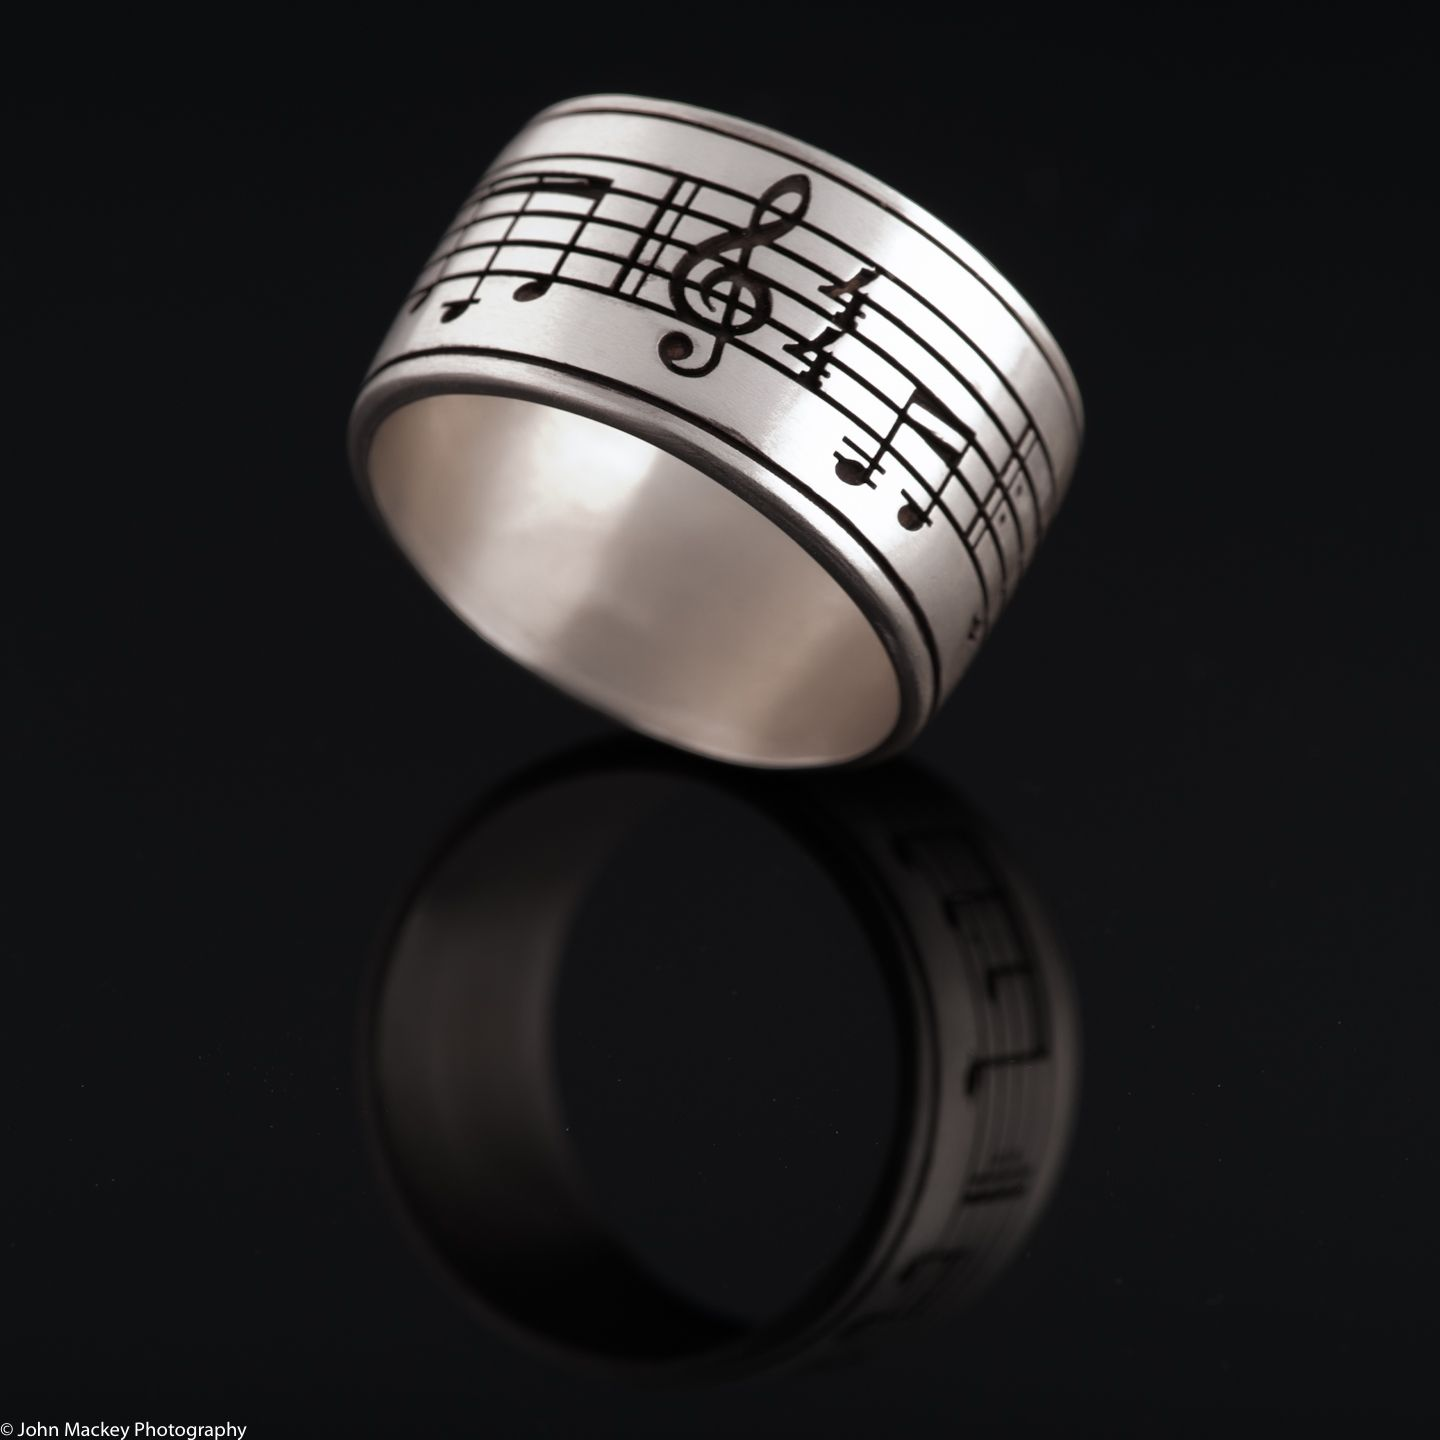 harry wedding rings etsy full star potter best size of ring beautiful idea engagement wars music